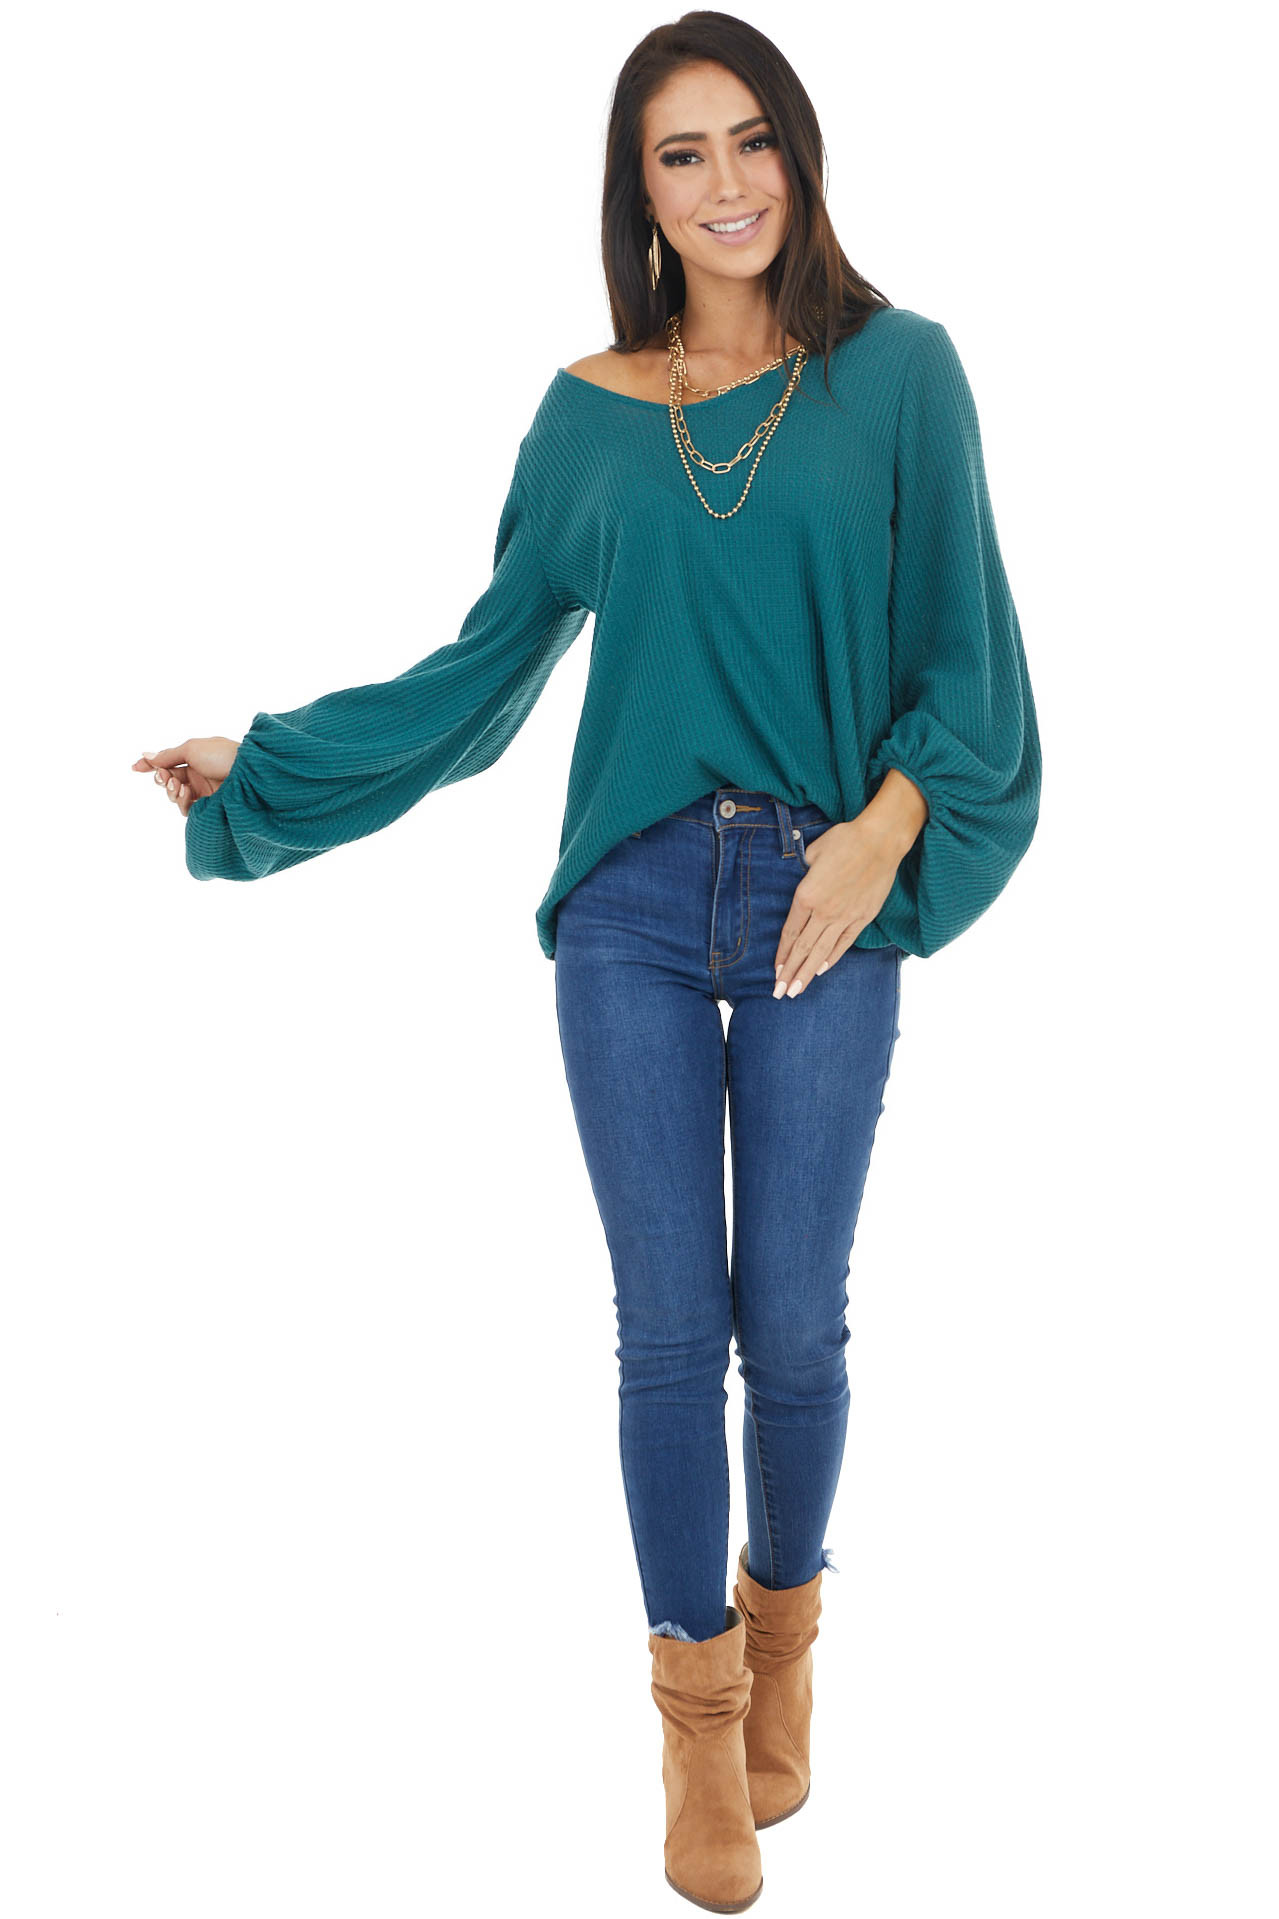 Pine Green Waffle Knit Top with Long Bubble Sleeves